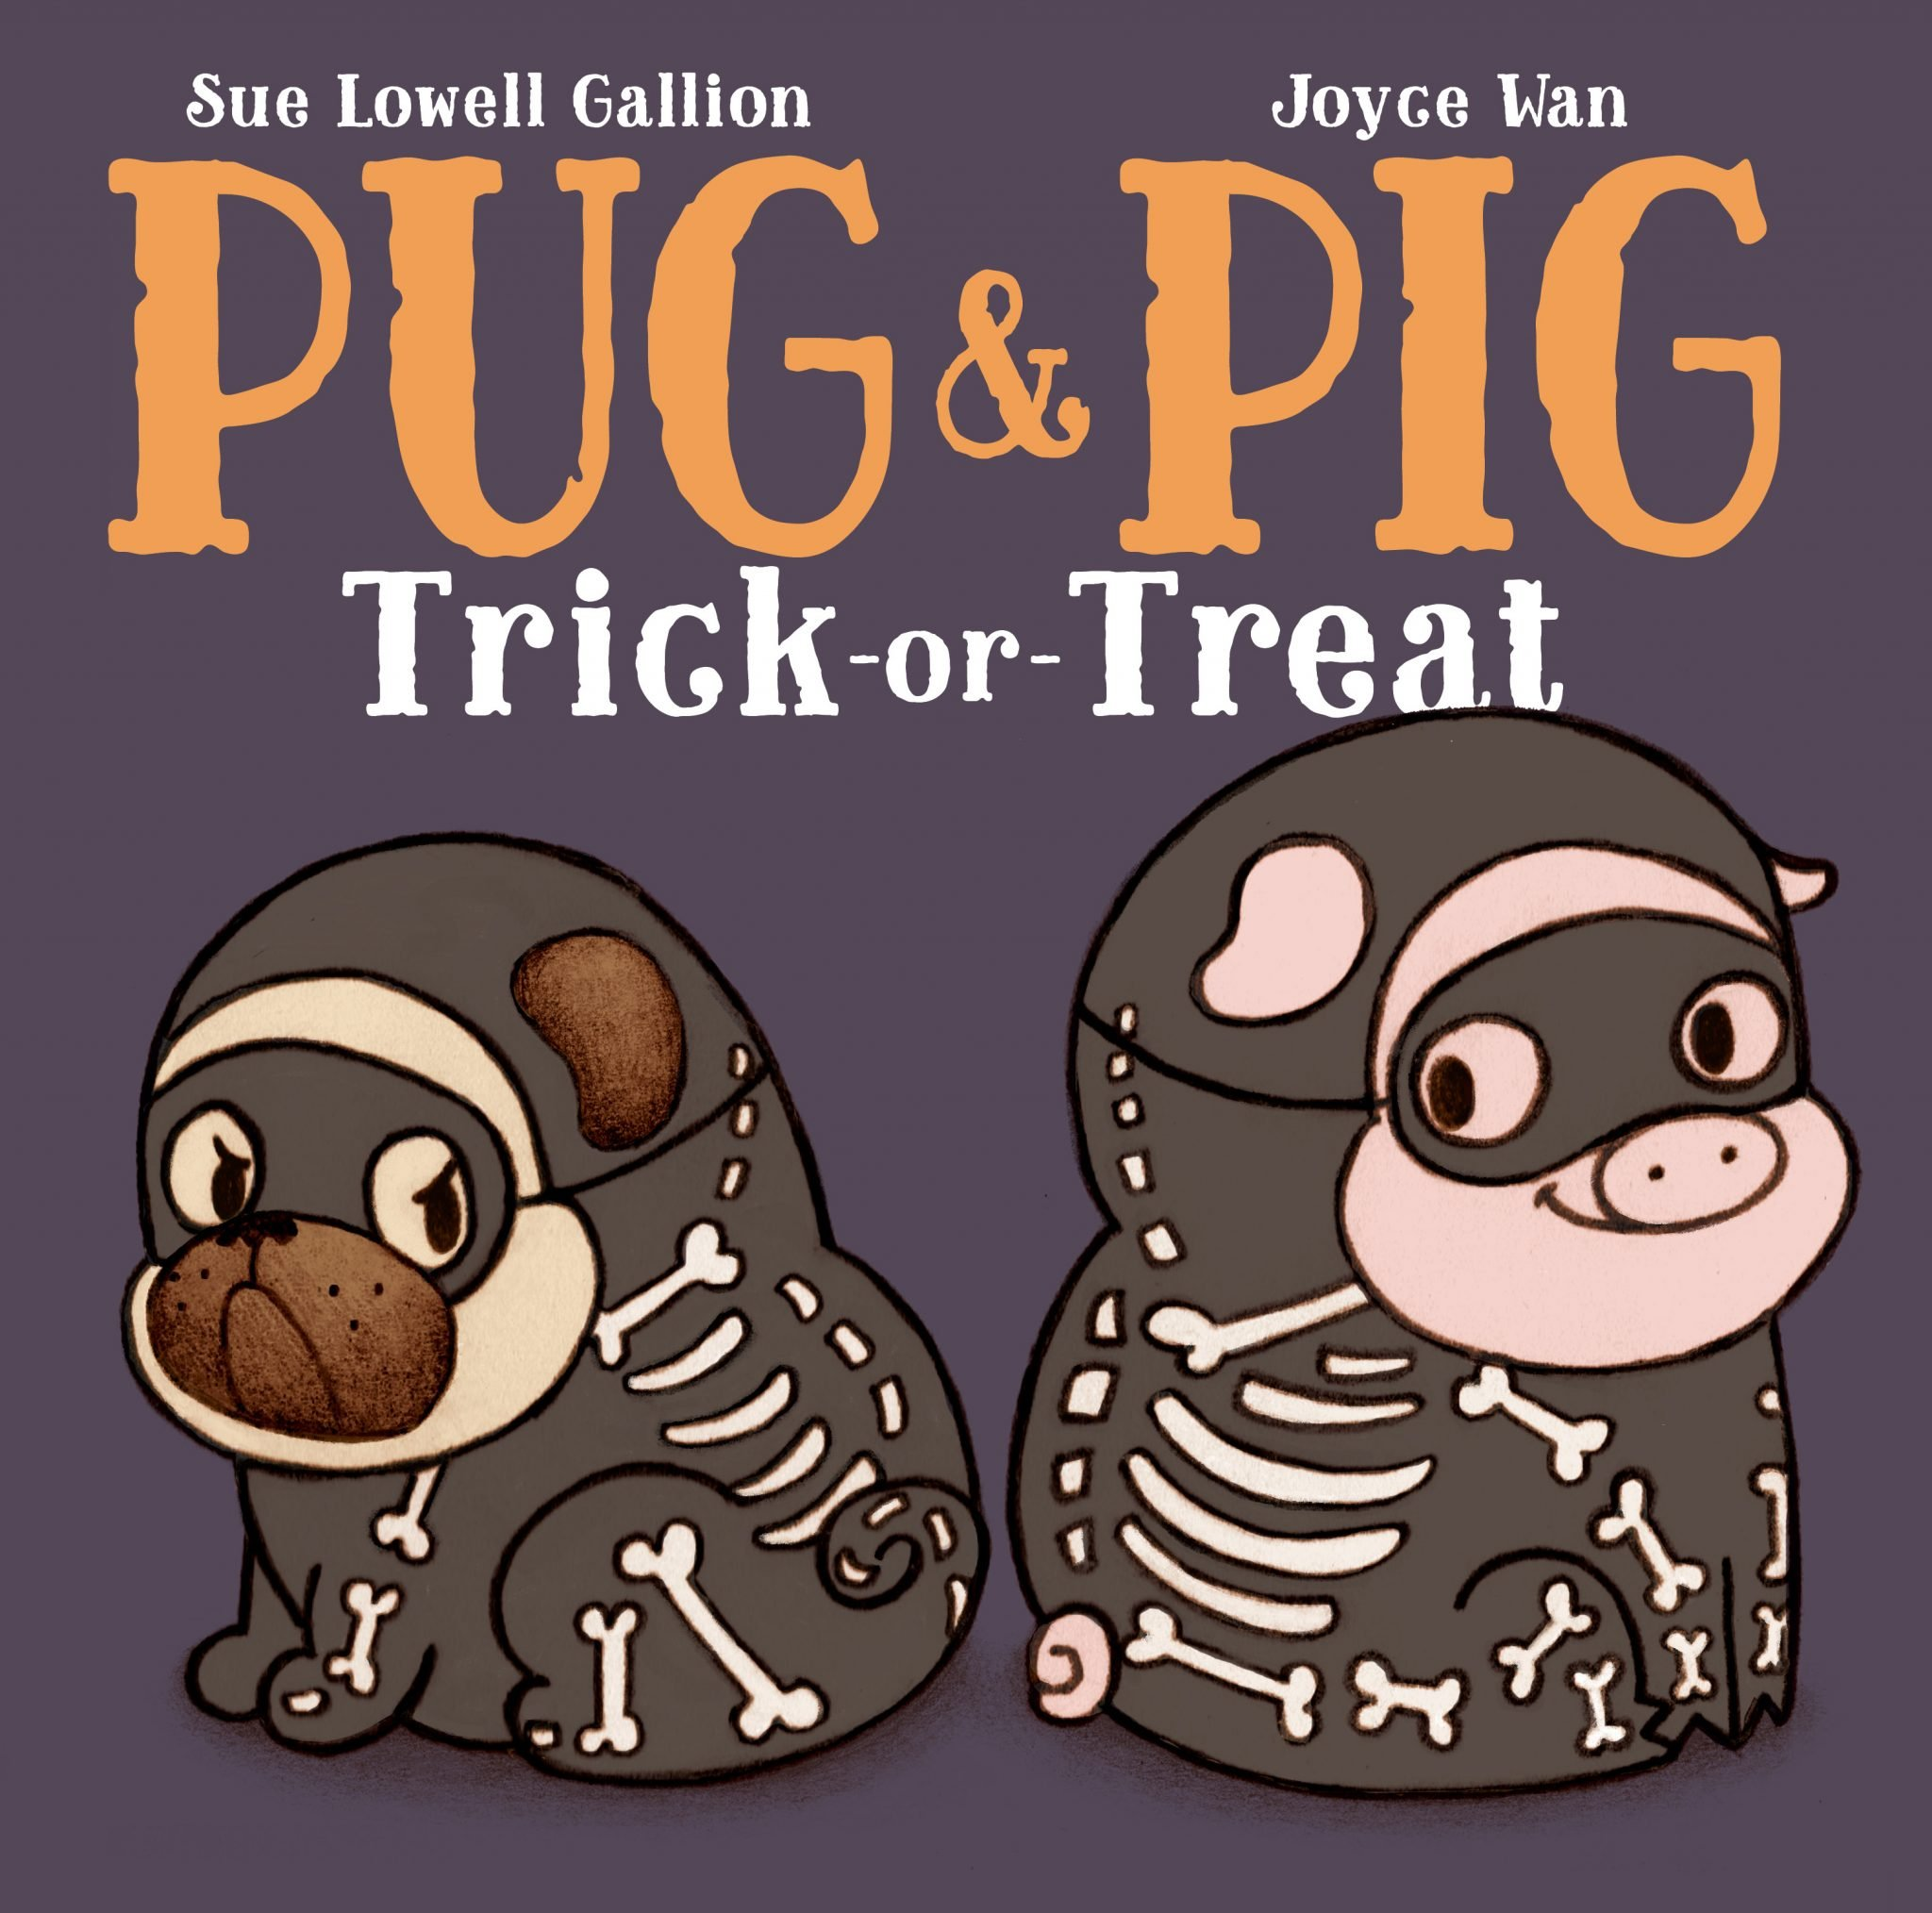 Pug & Pig Trick-or-Treat with Activity Guide and Benji & the 24 Pound Banana Squash Giveaway US 10/21